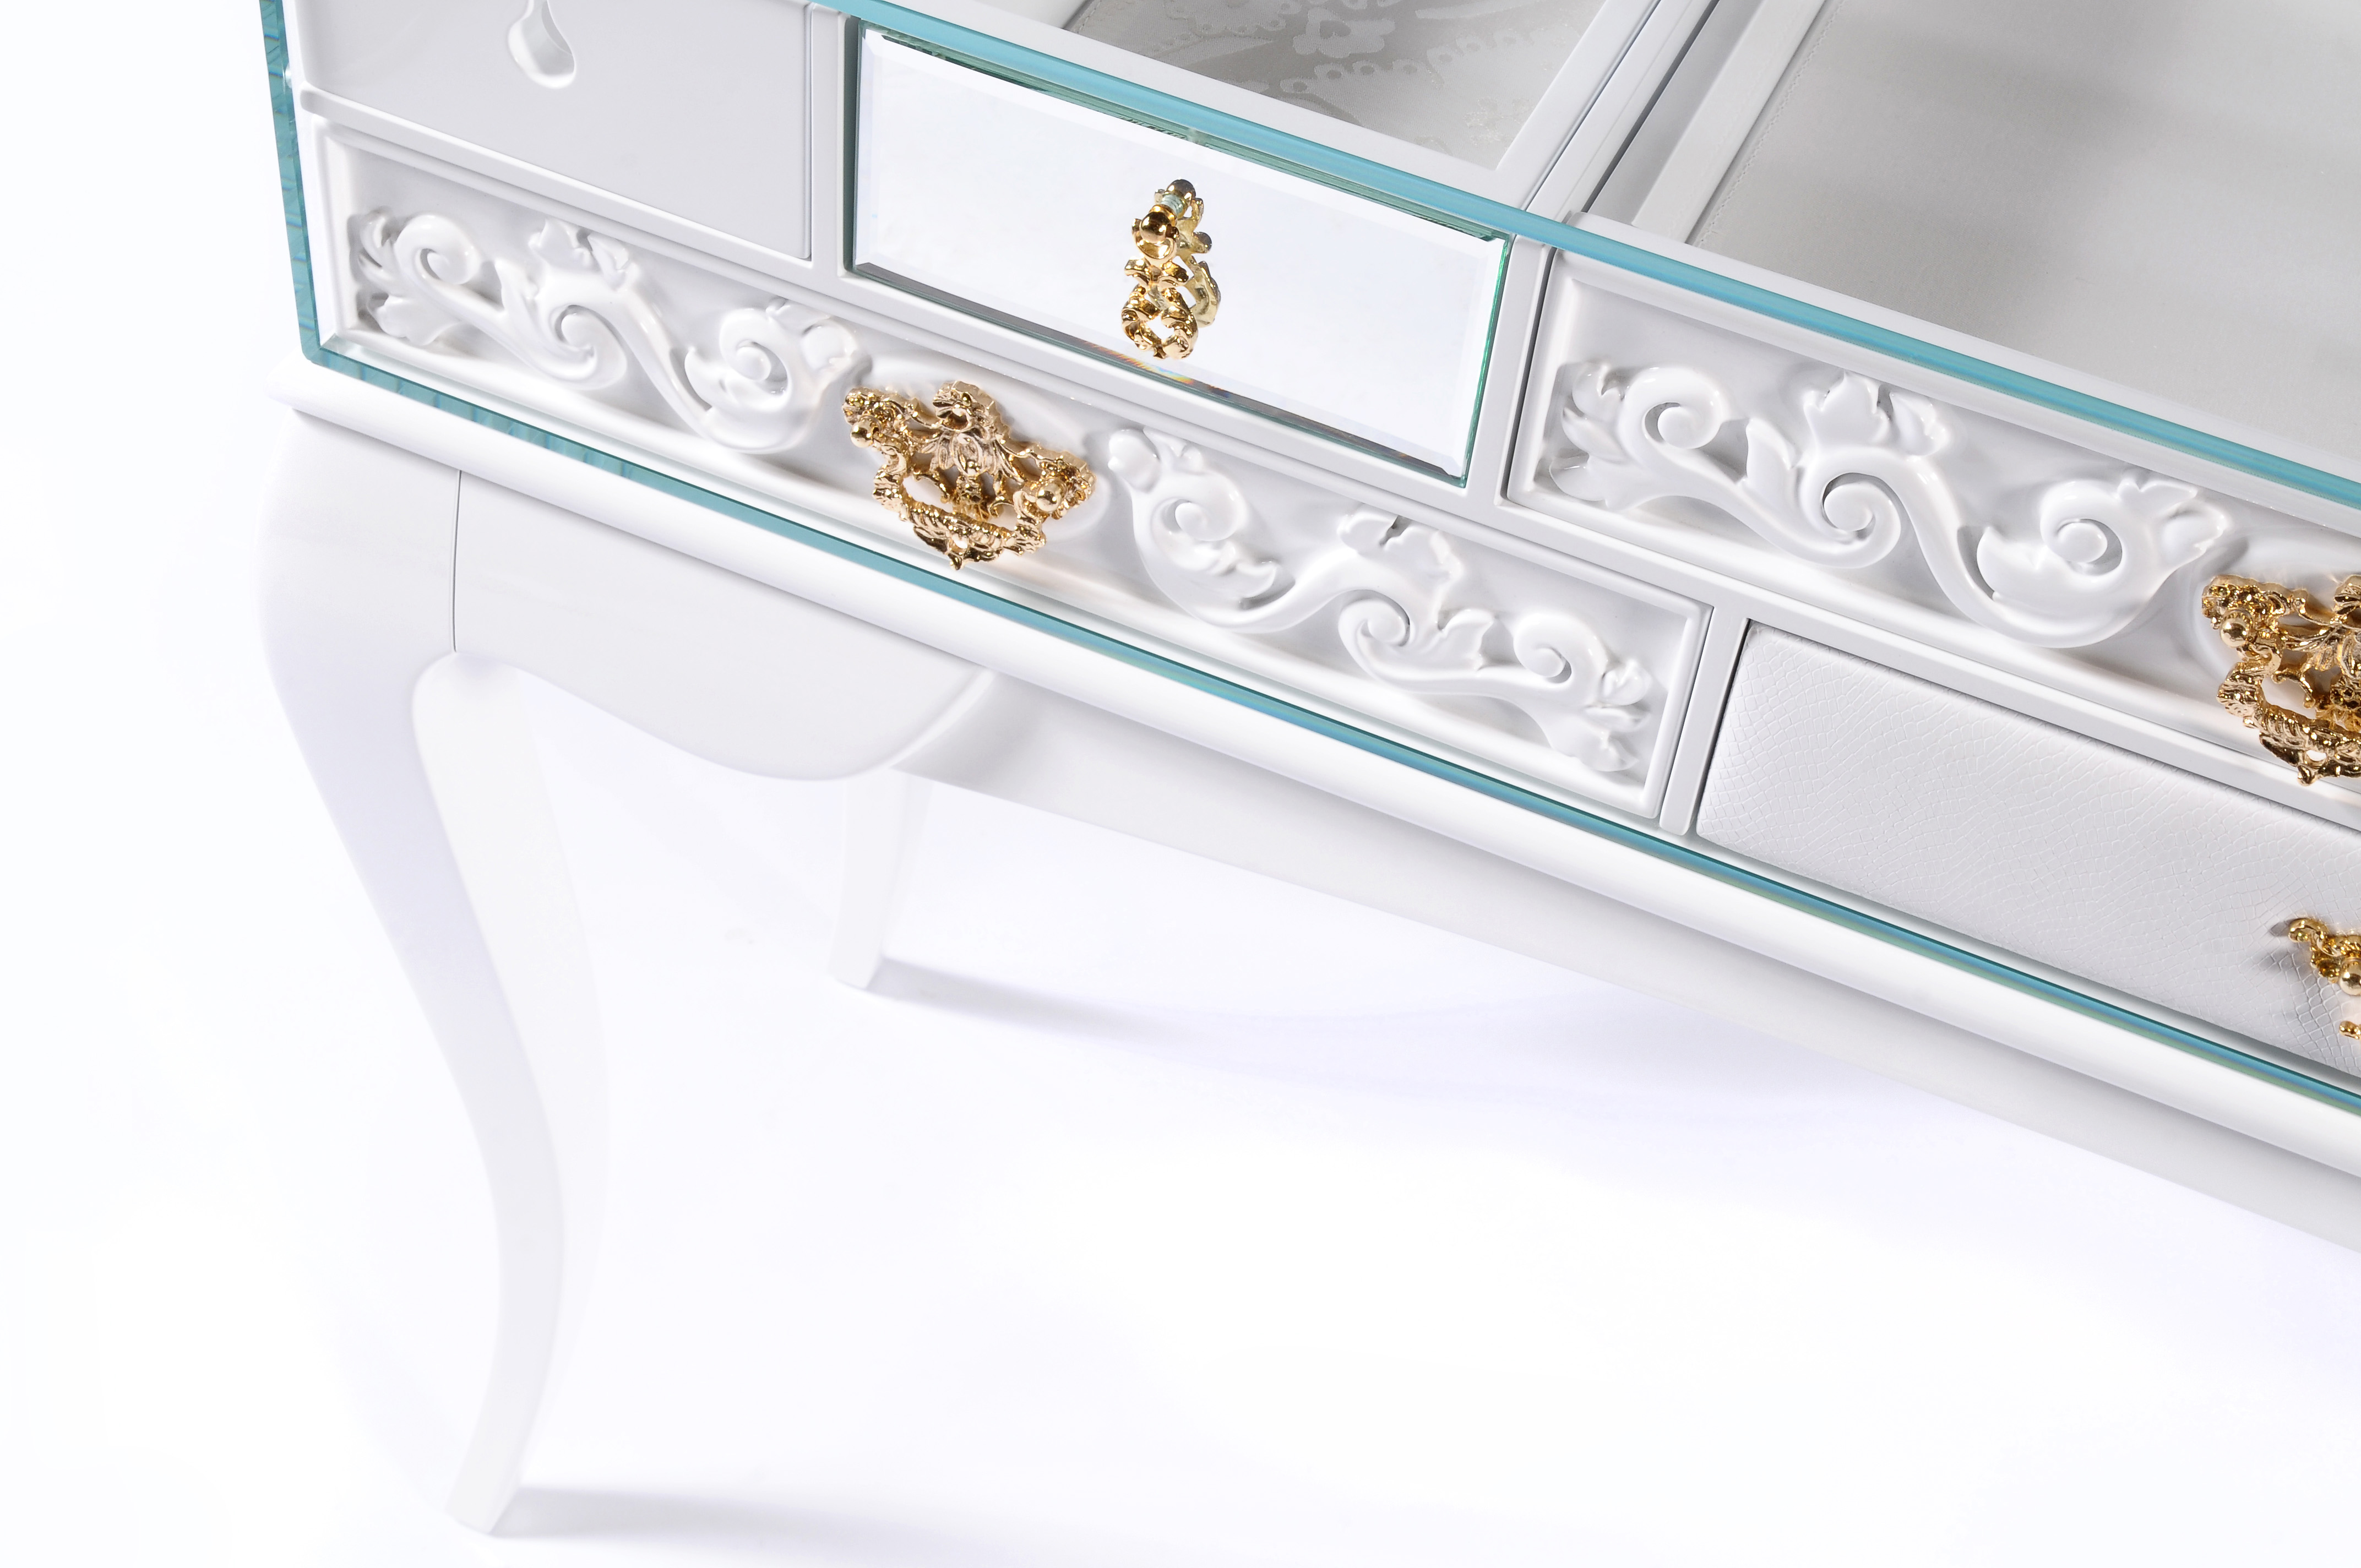 console tables Amazing Console Tables With Detailed Design 21 Amazing Console Tables With Detailed Design